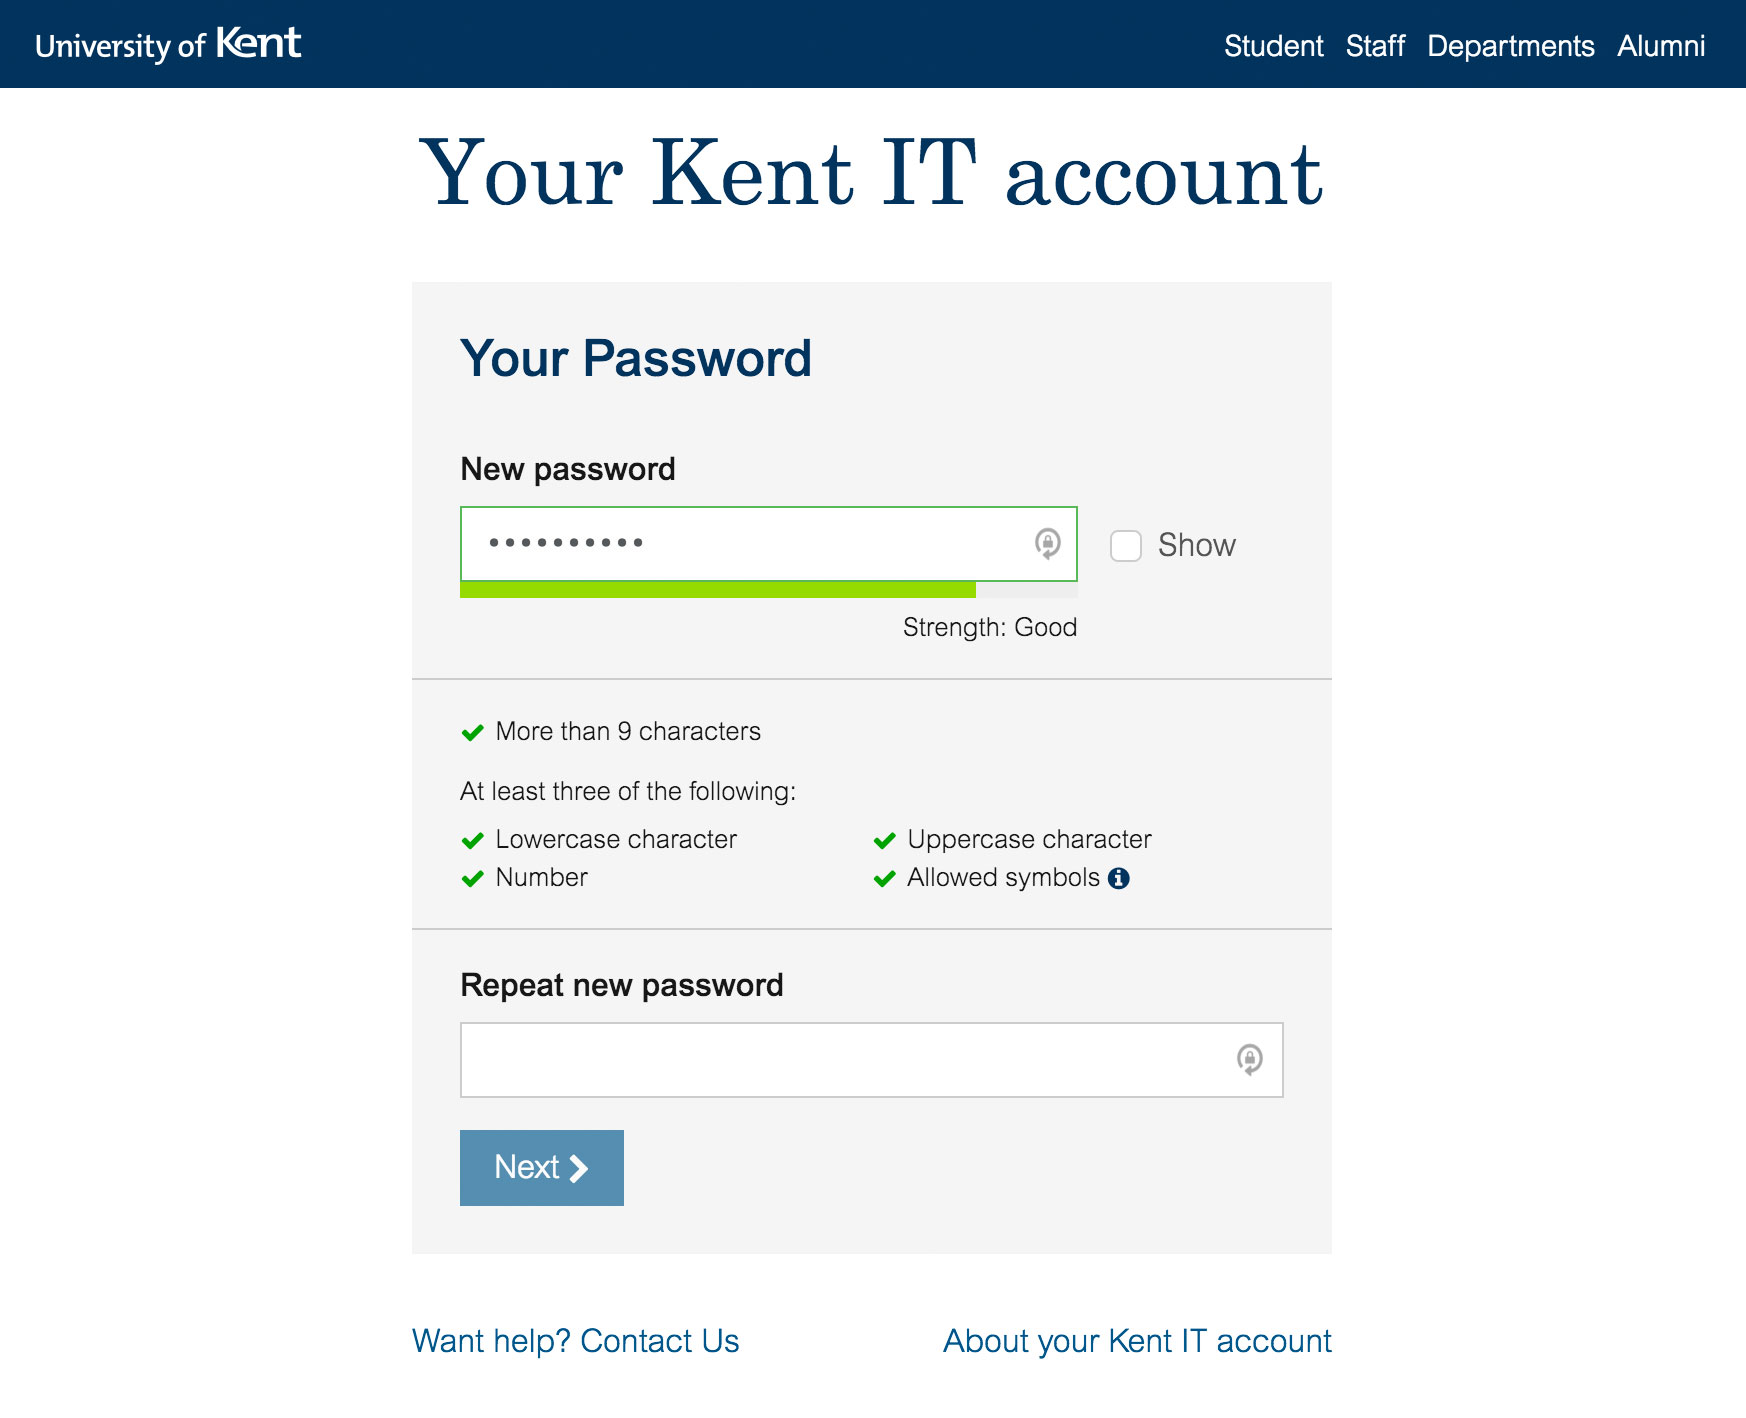 Kent IT account new account activation form